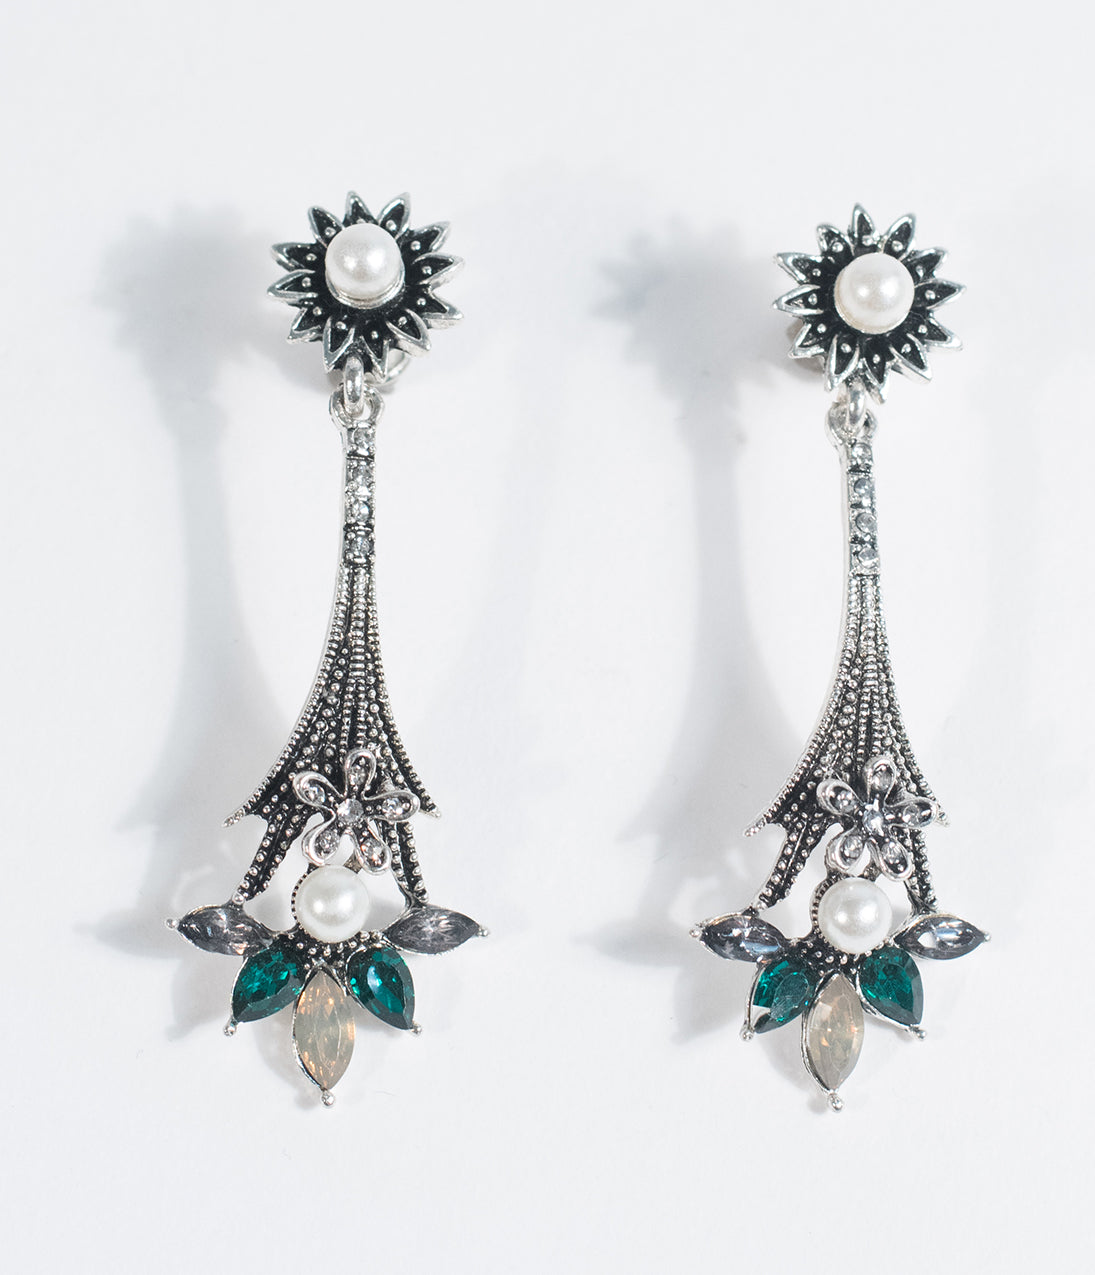 1920s Jewelry Styles History Silver Pearl  Emerald Gem Drop Earrings $18.00 AT vintagedancer.com